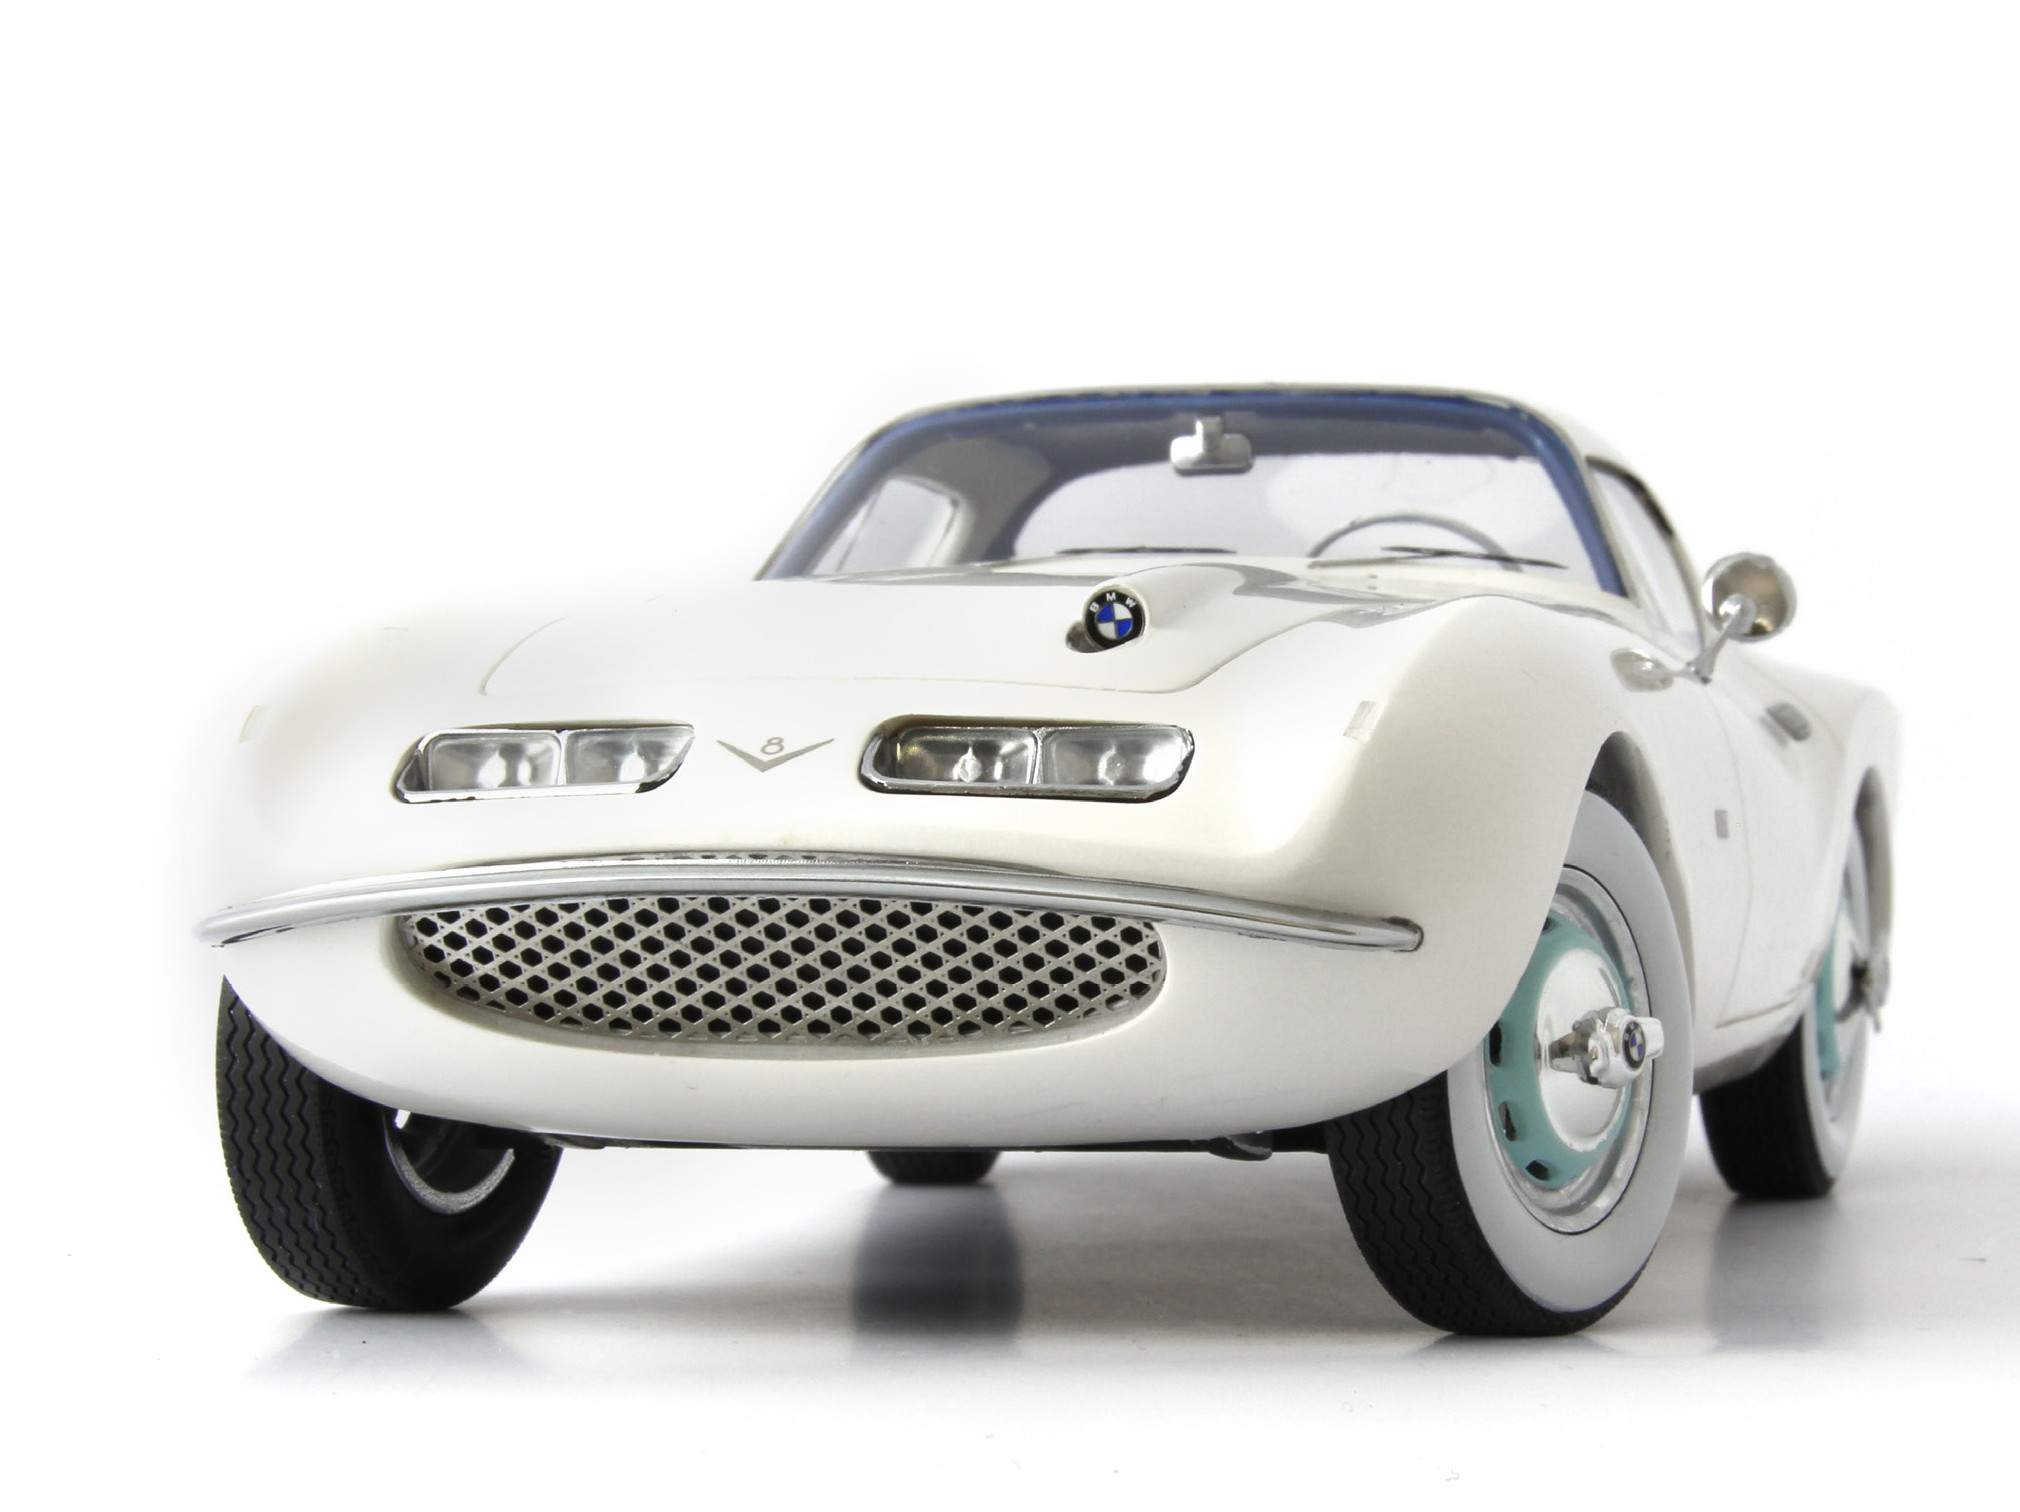 Car Detailing Supplies >> 1956 BMW 507 Raymond Loewy - 1:18 Scale by AutoCult - Choice Gear